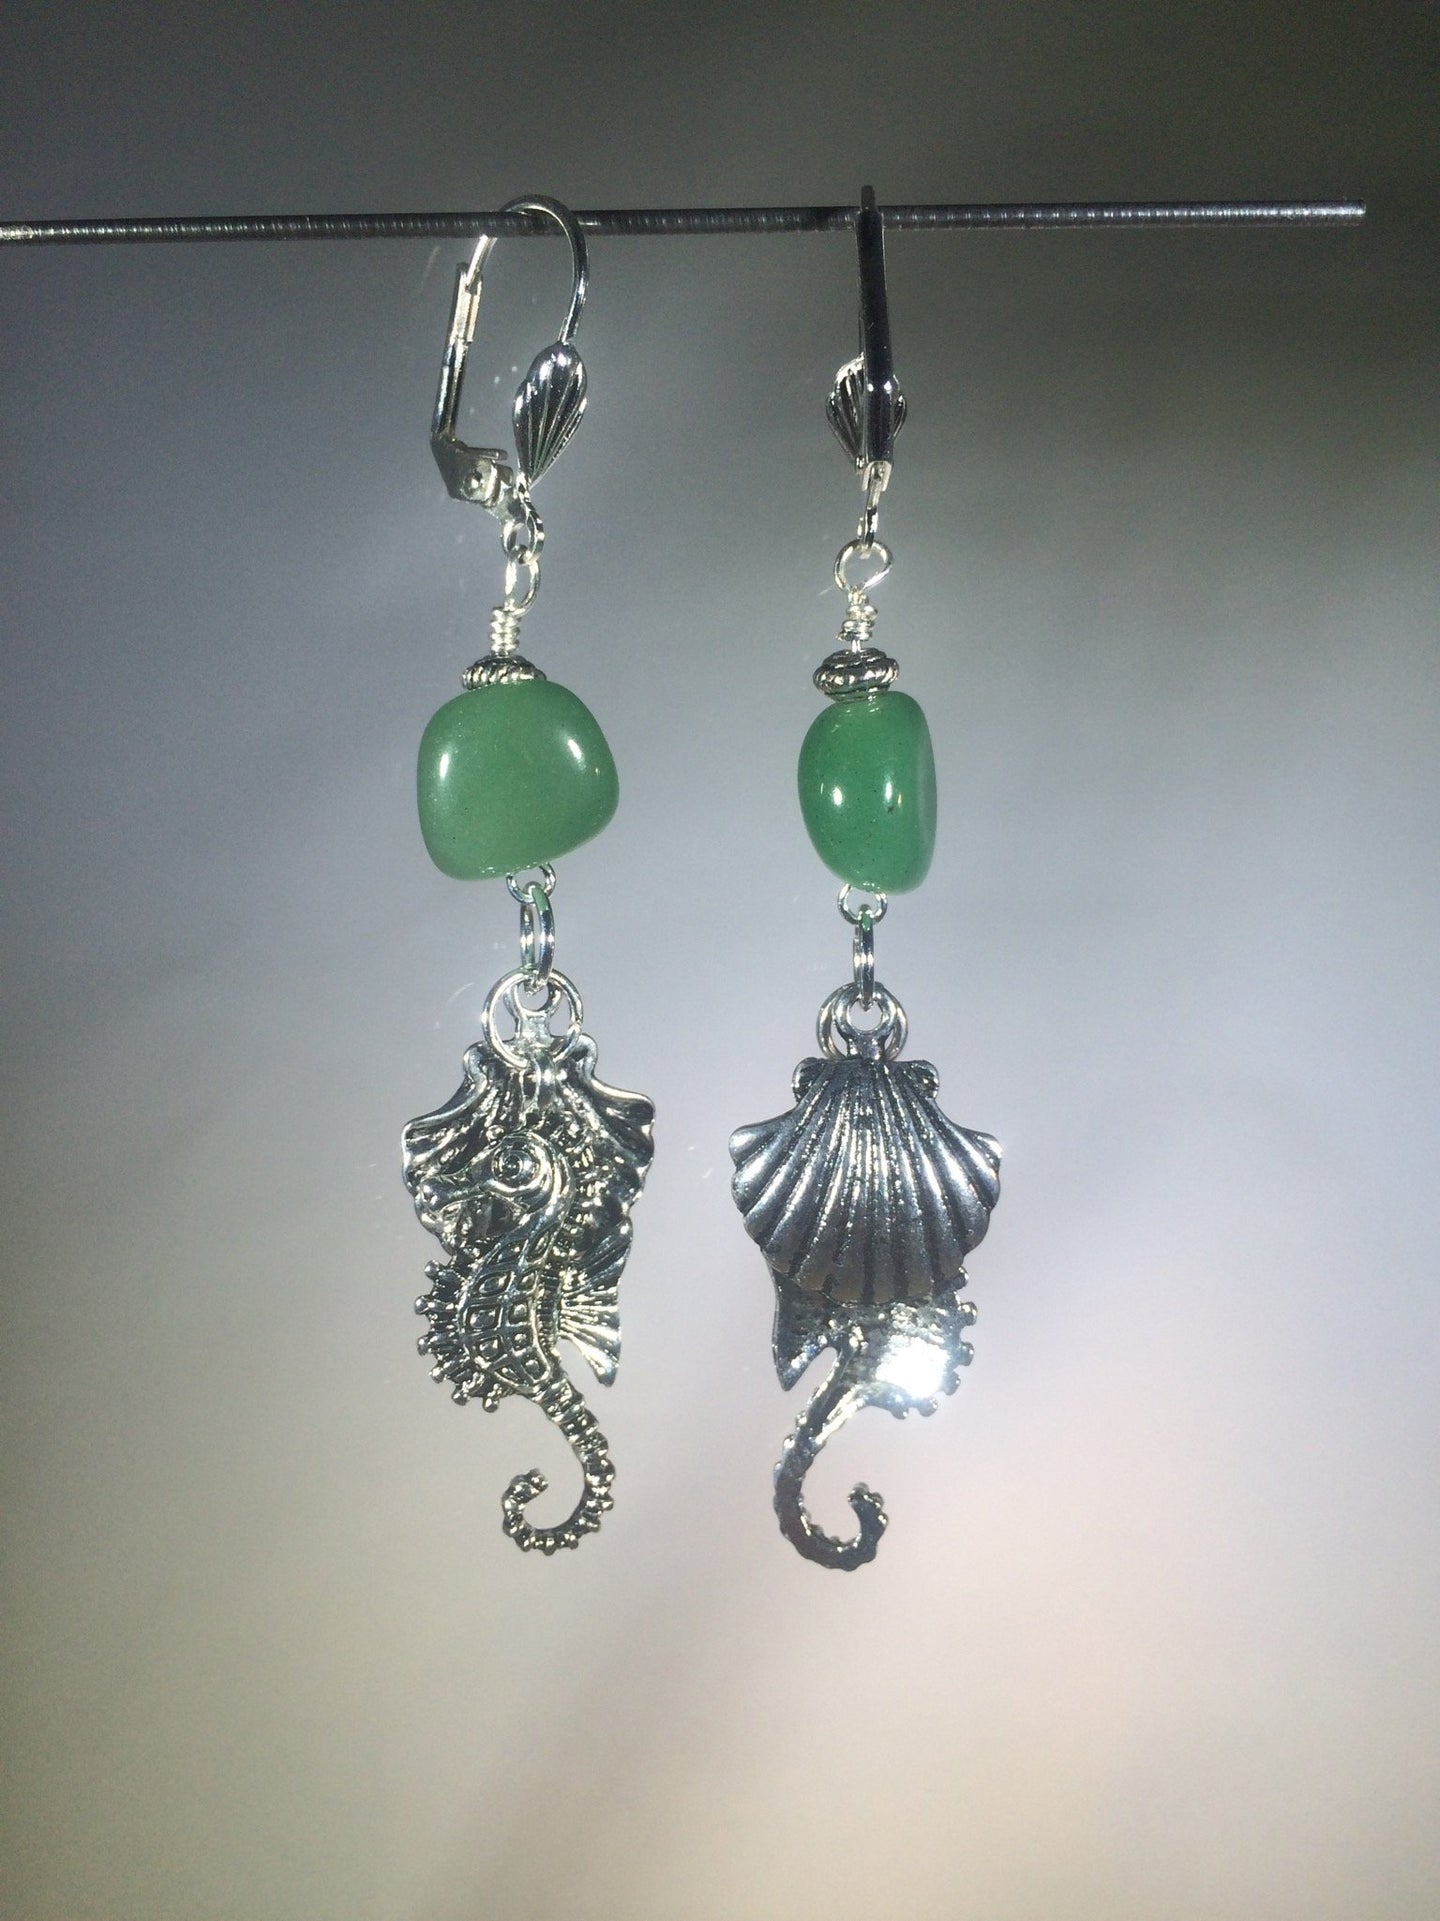 Metal seahorse and scallop shell charms tinkle together as they dangle below a 10mm asymmetric green aventurine bead, all mounted on silver plated brass leverbacks. Variations: (A) Seahorse, (B) Sea Turtle